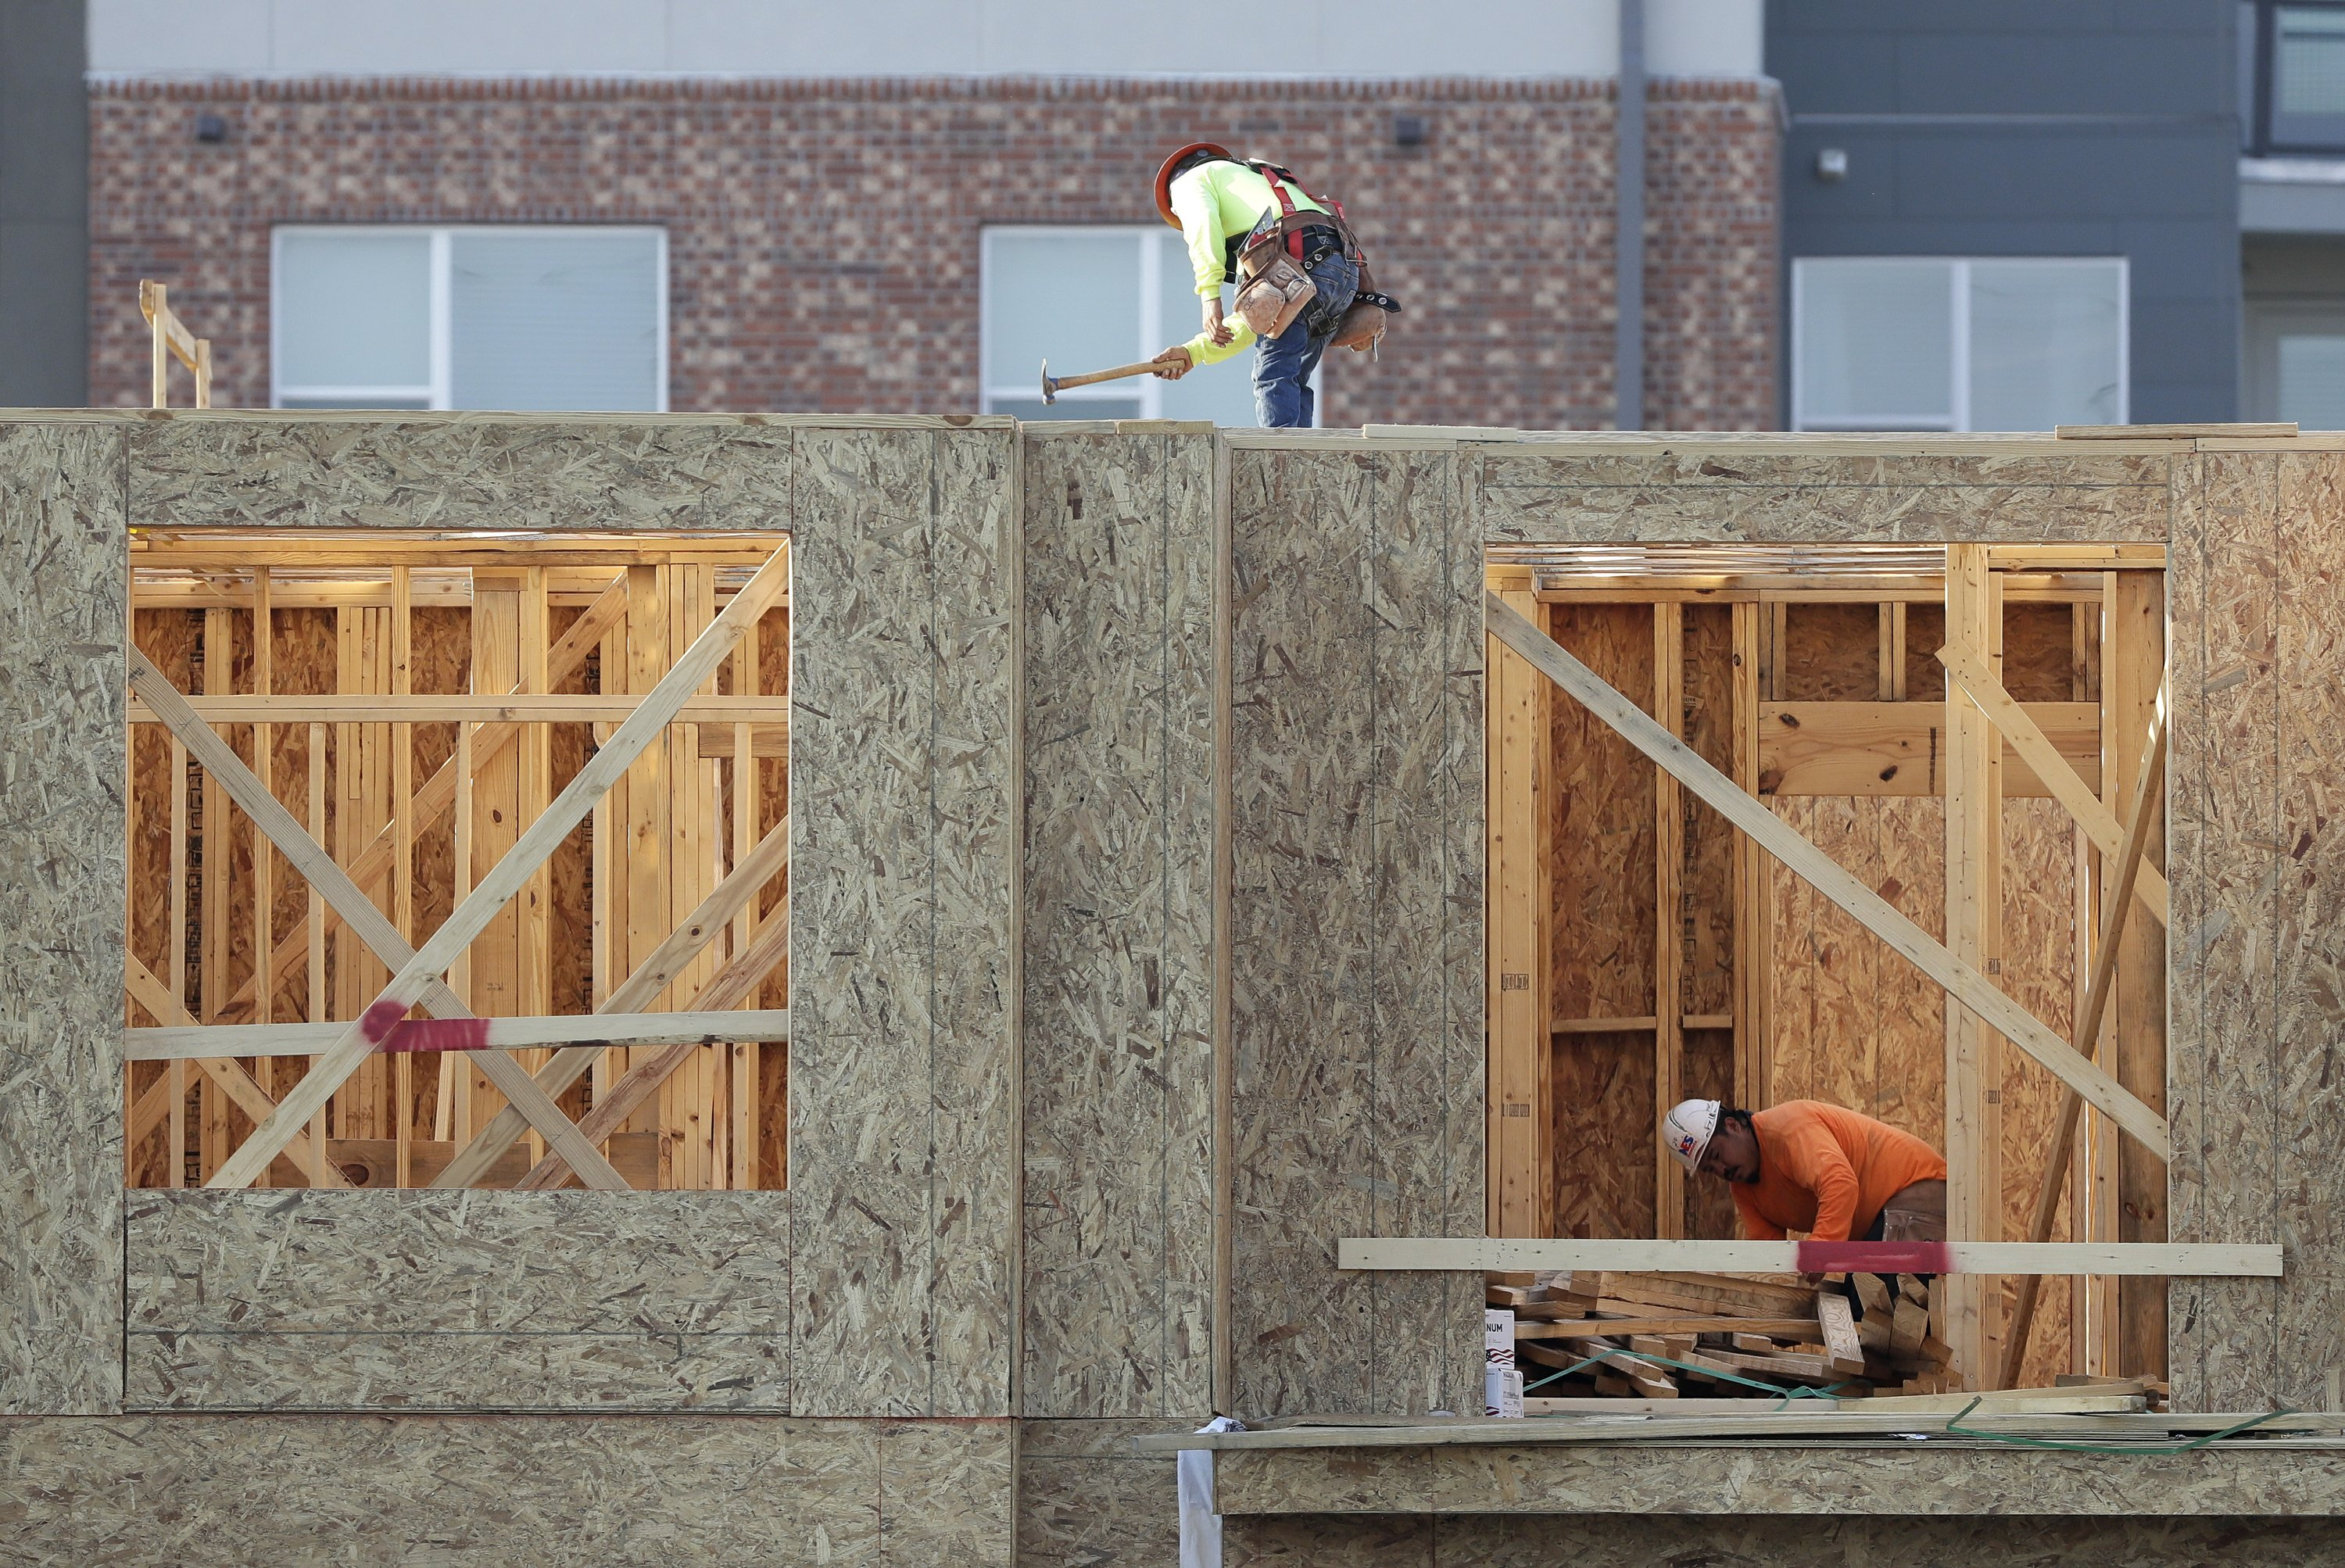 US economy expanded at faster 2.6 percent rate in Q2